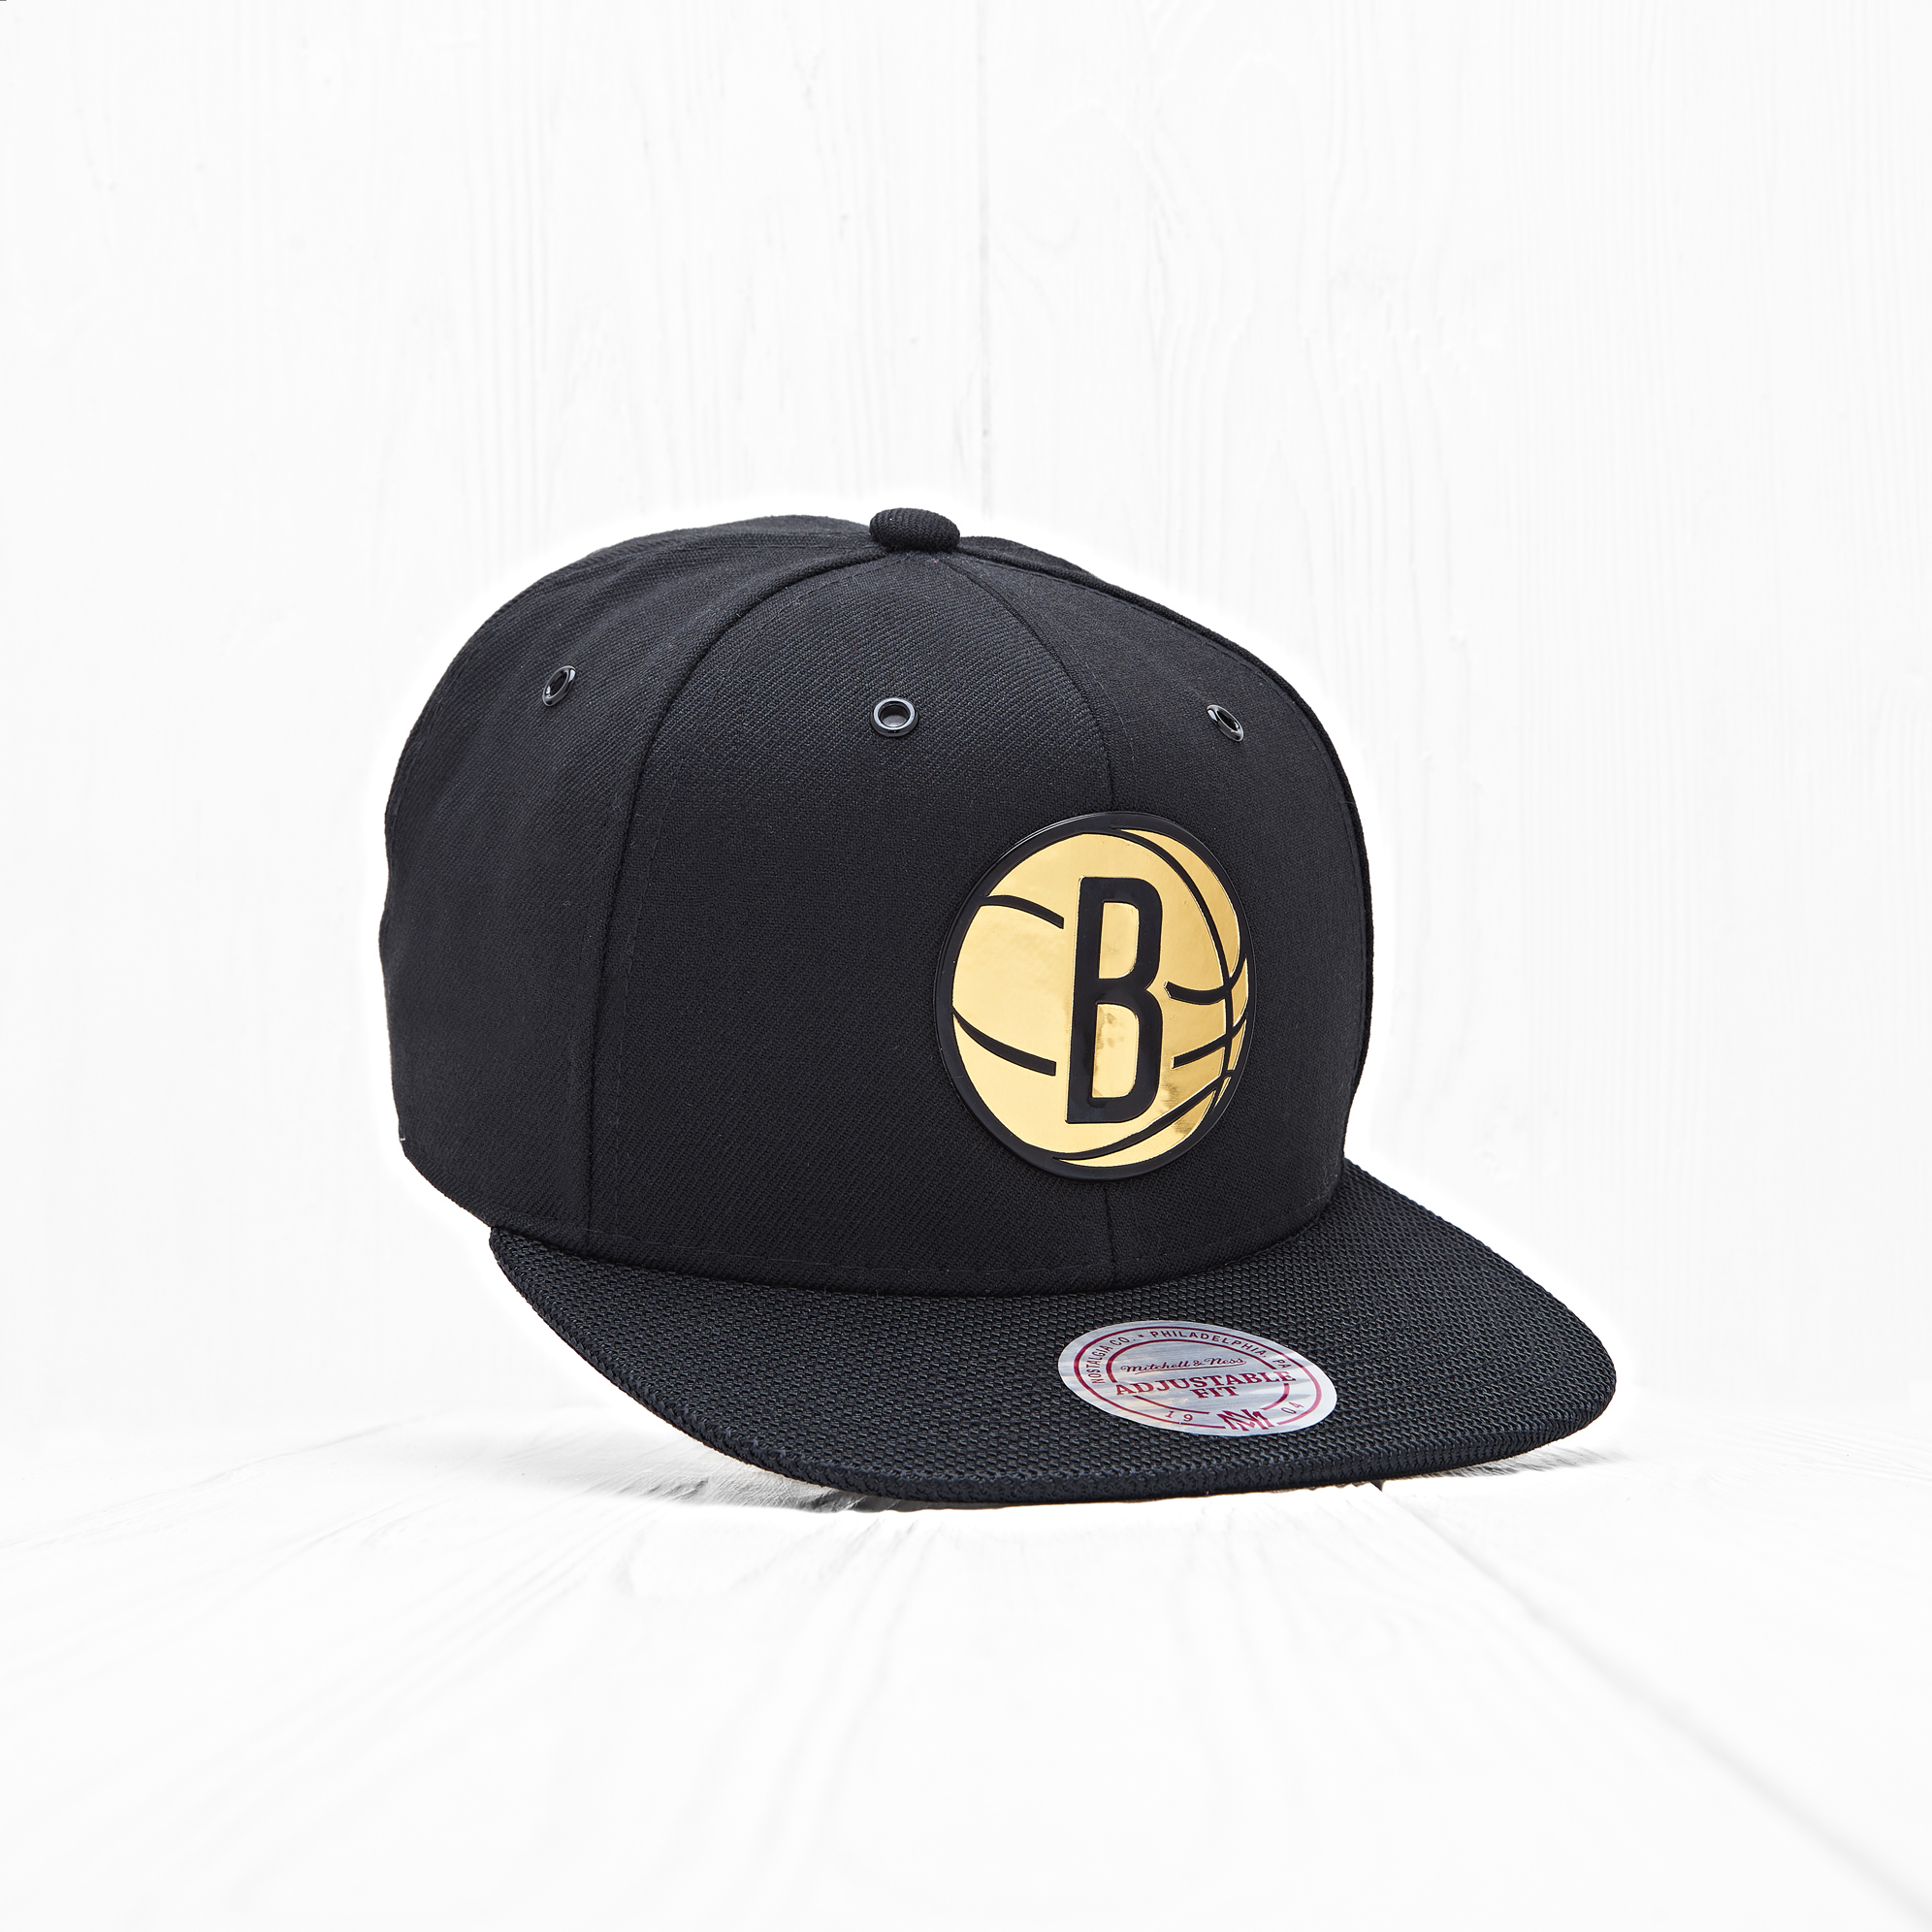 Снепбек Mitchell & Ness NBA BROOKLYN NETS Carat Black